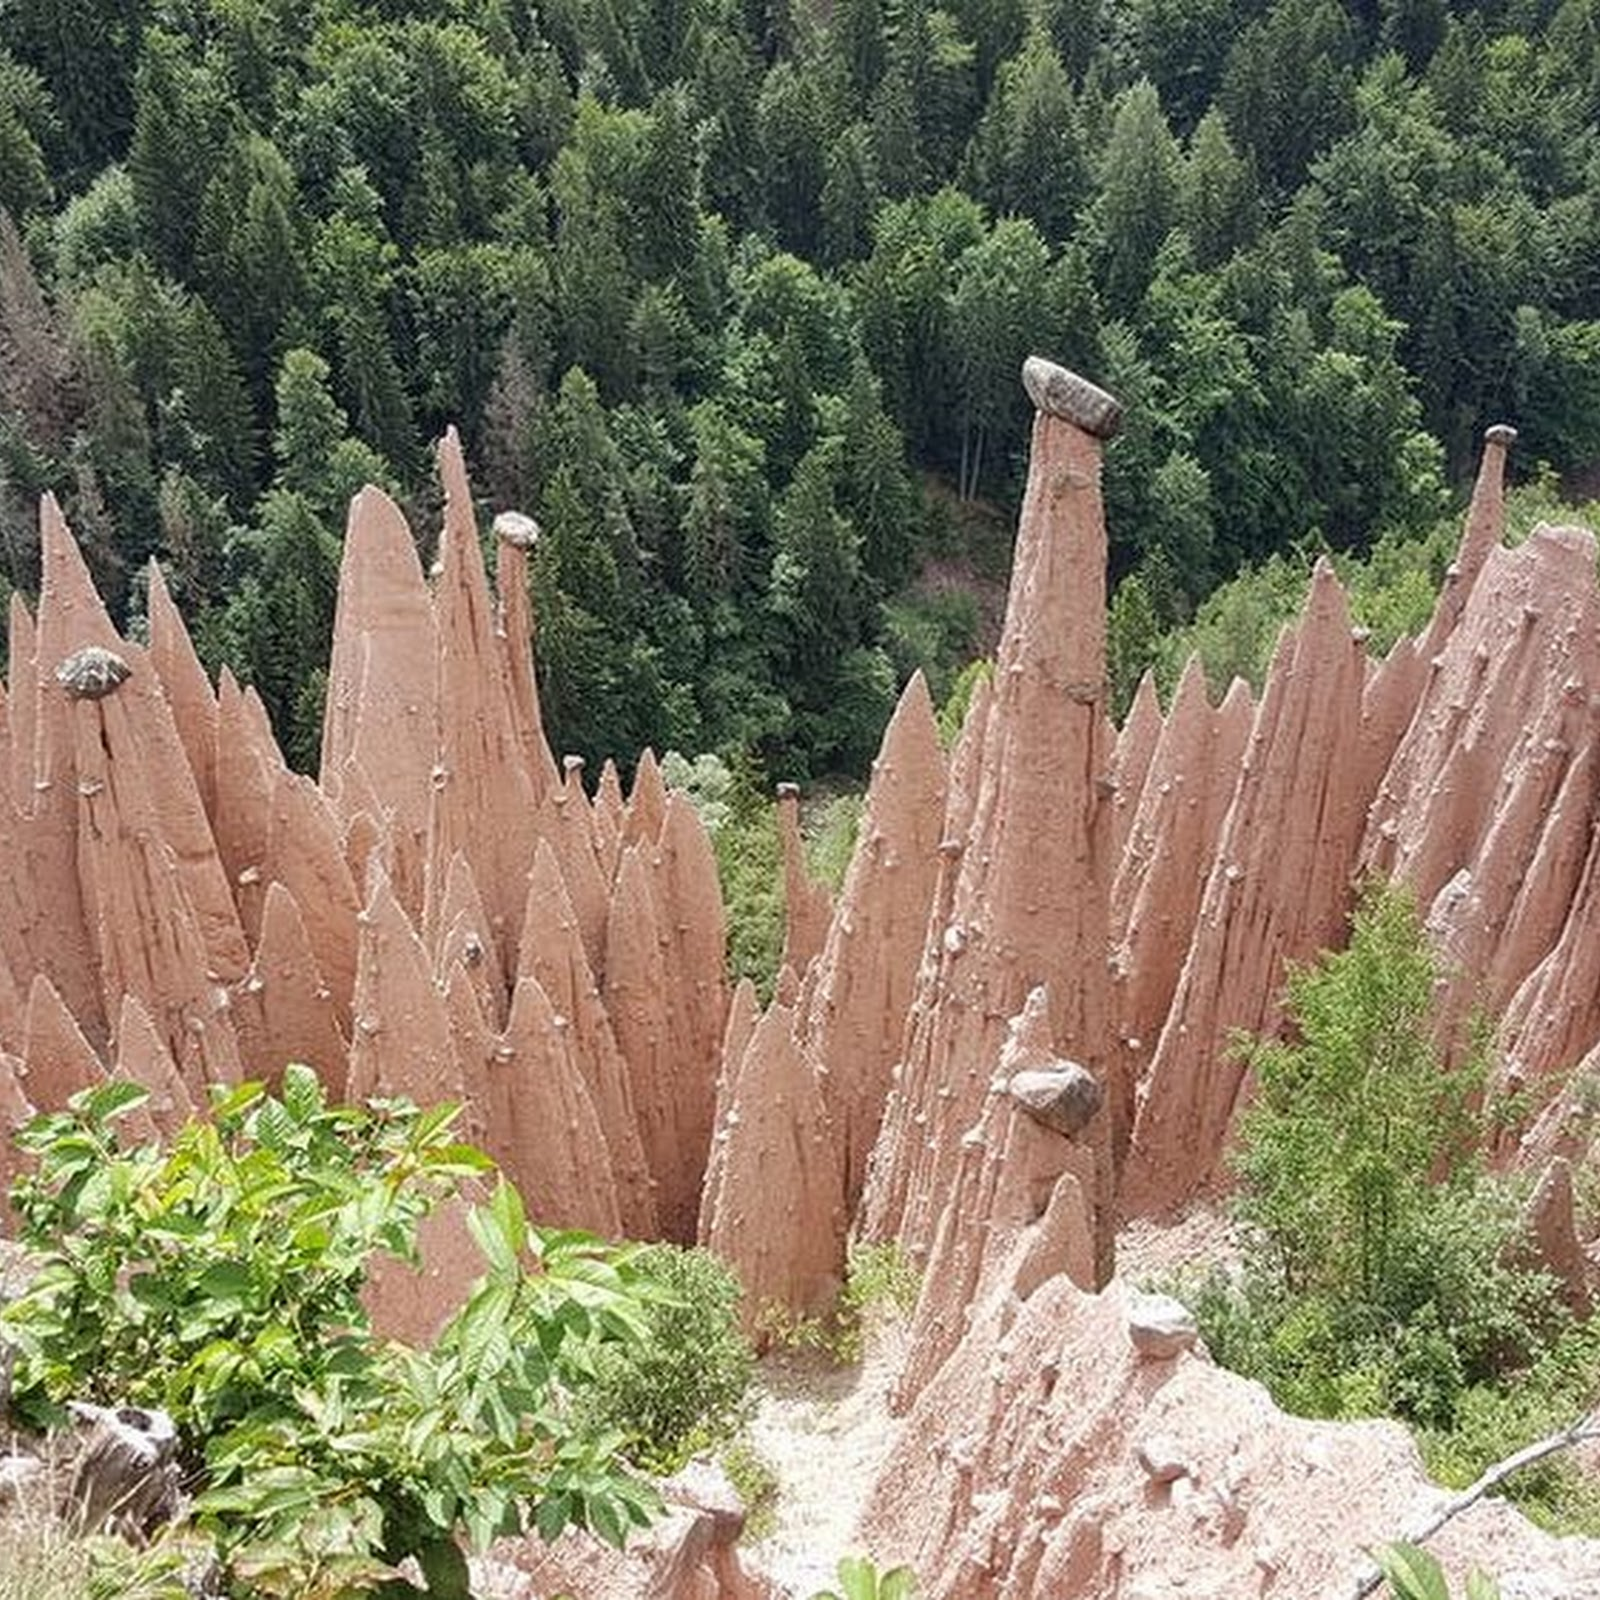 The Earth Pyramids of South Tyrol